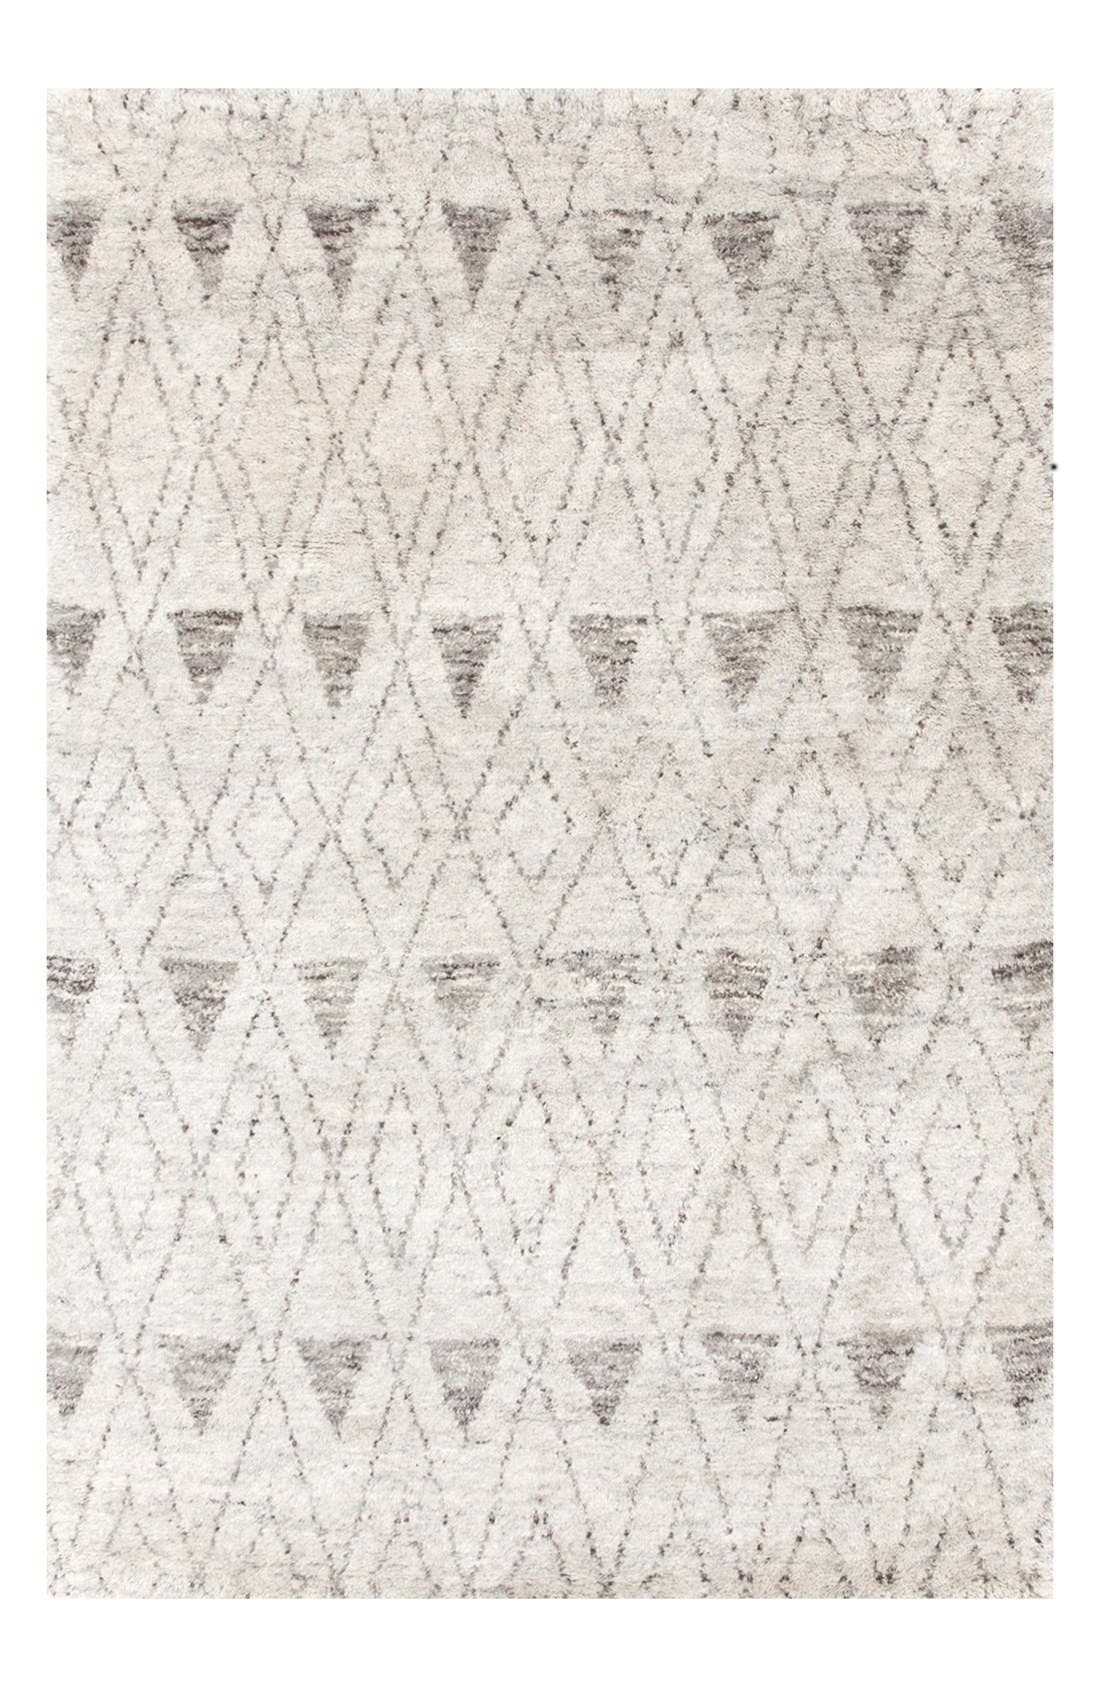 Alternate Image 1 Selected - Dash & Albert 'Masinissa' Hand Knotted Rug